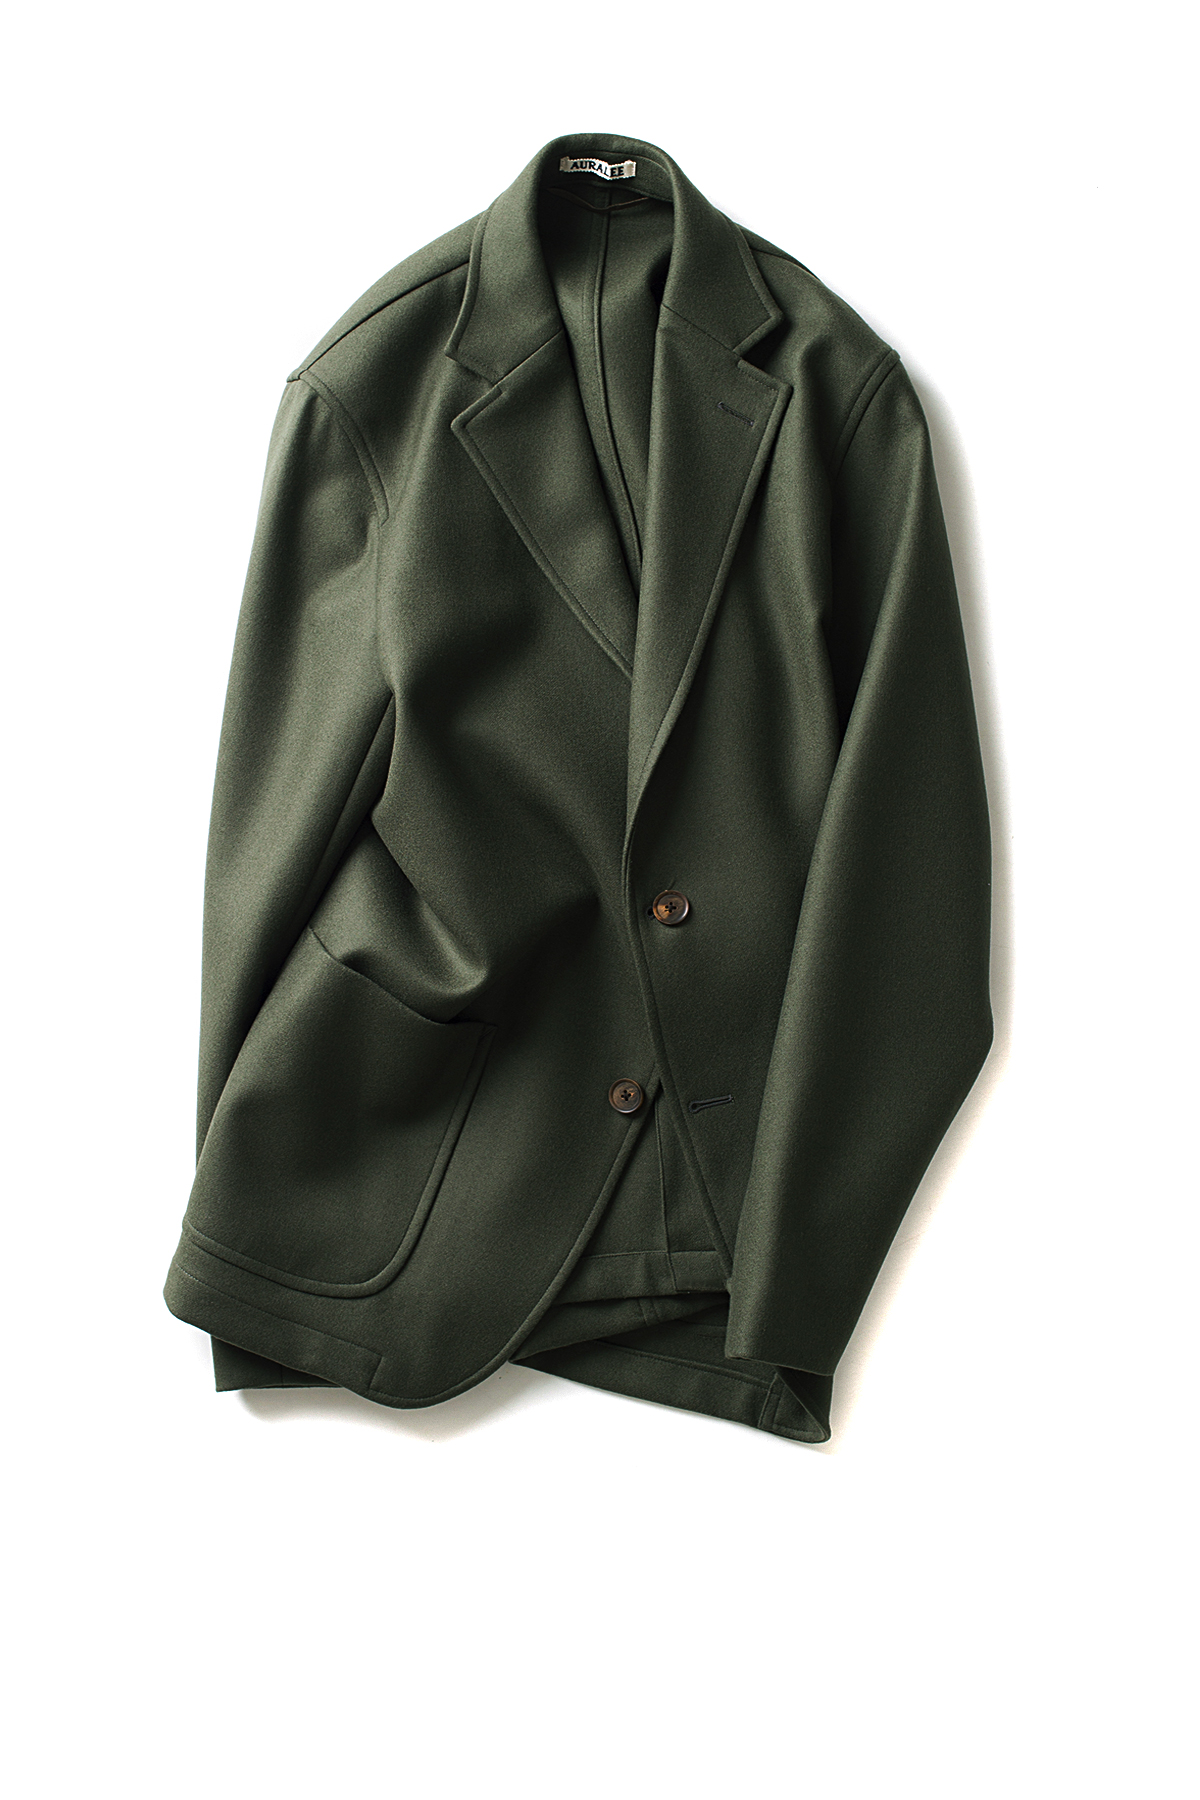 Auralee : Light Melton Jacket (Olive)